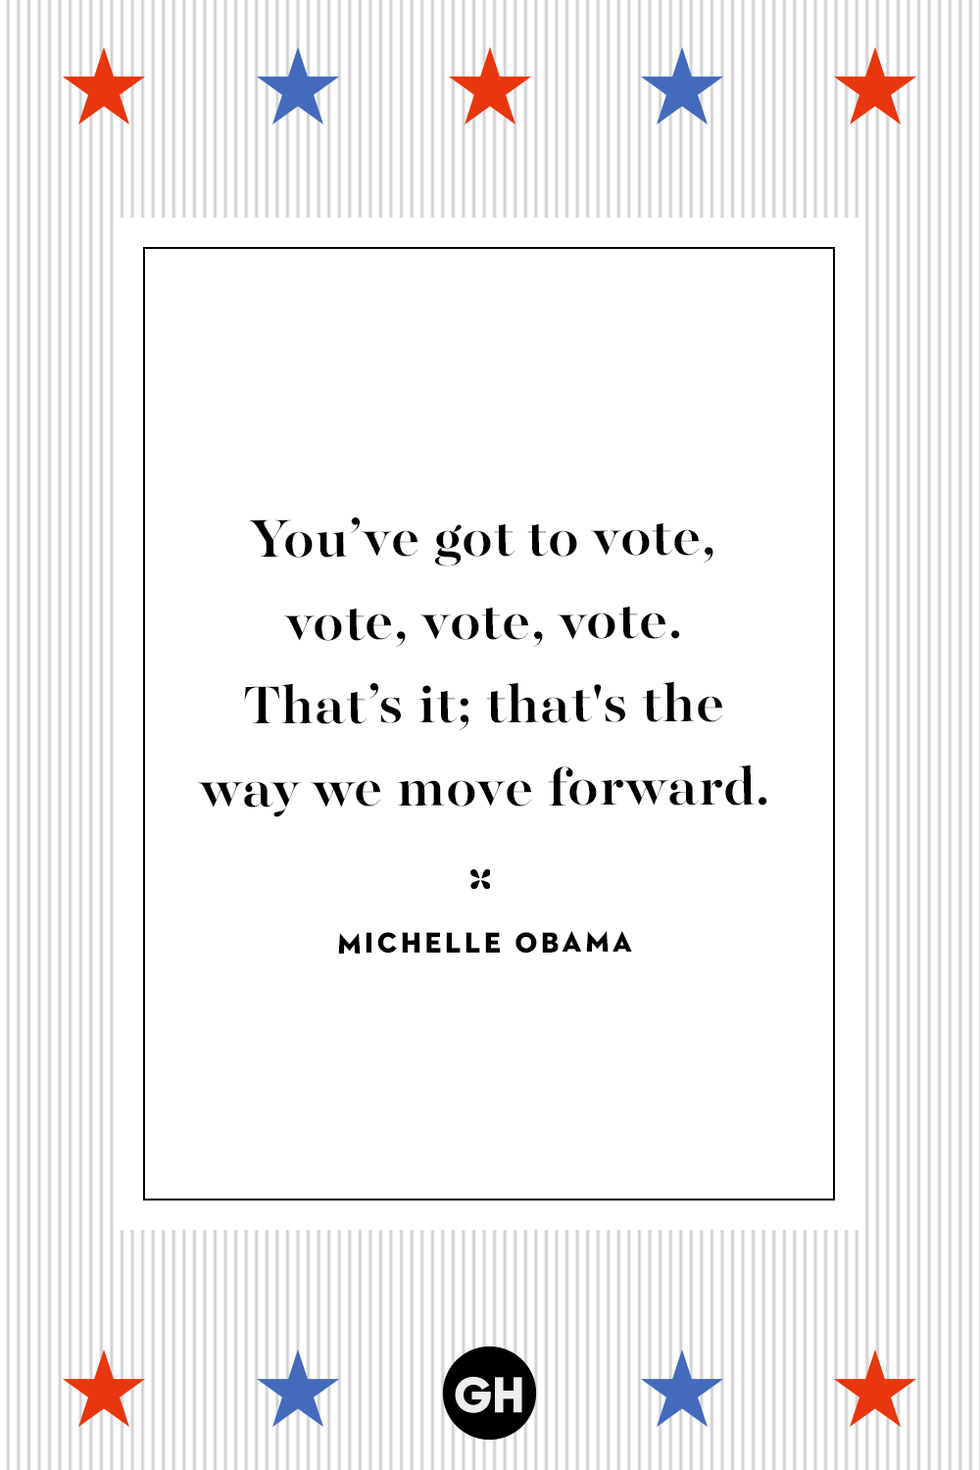 election-quotes-voting-quotes-10-michelle-obama-1567019363